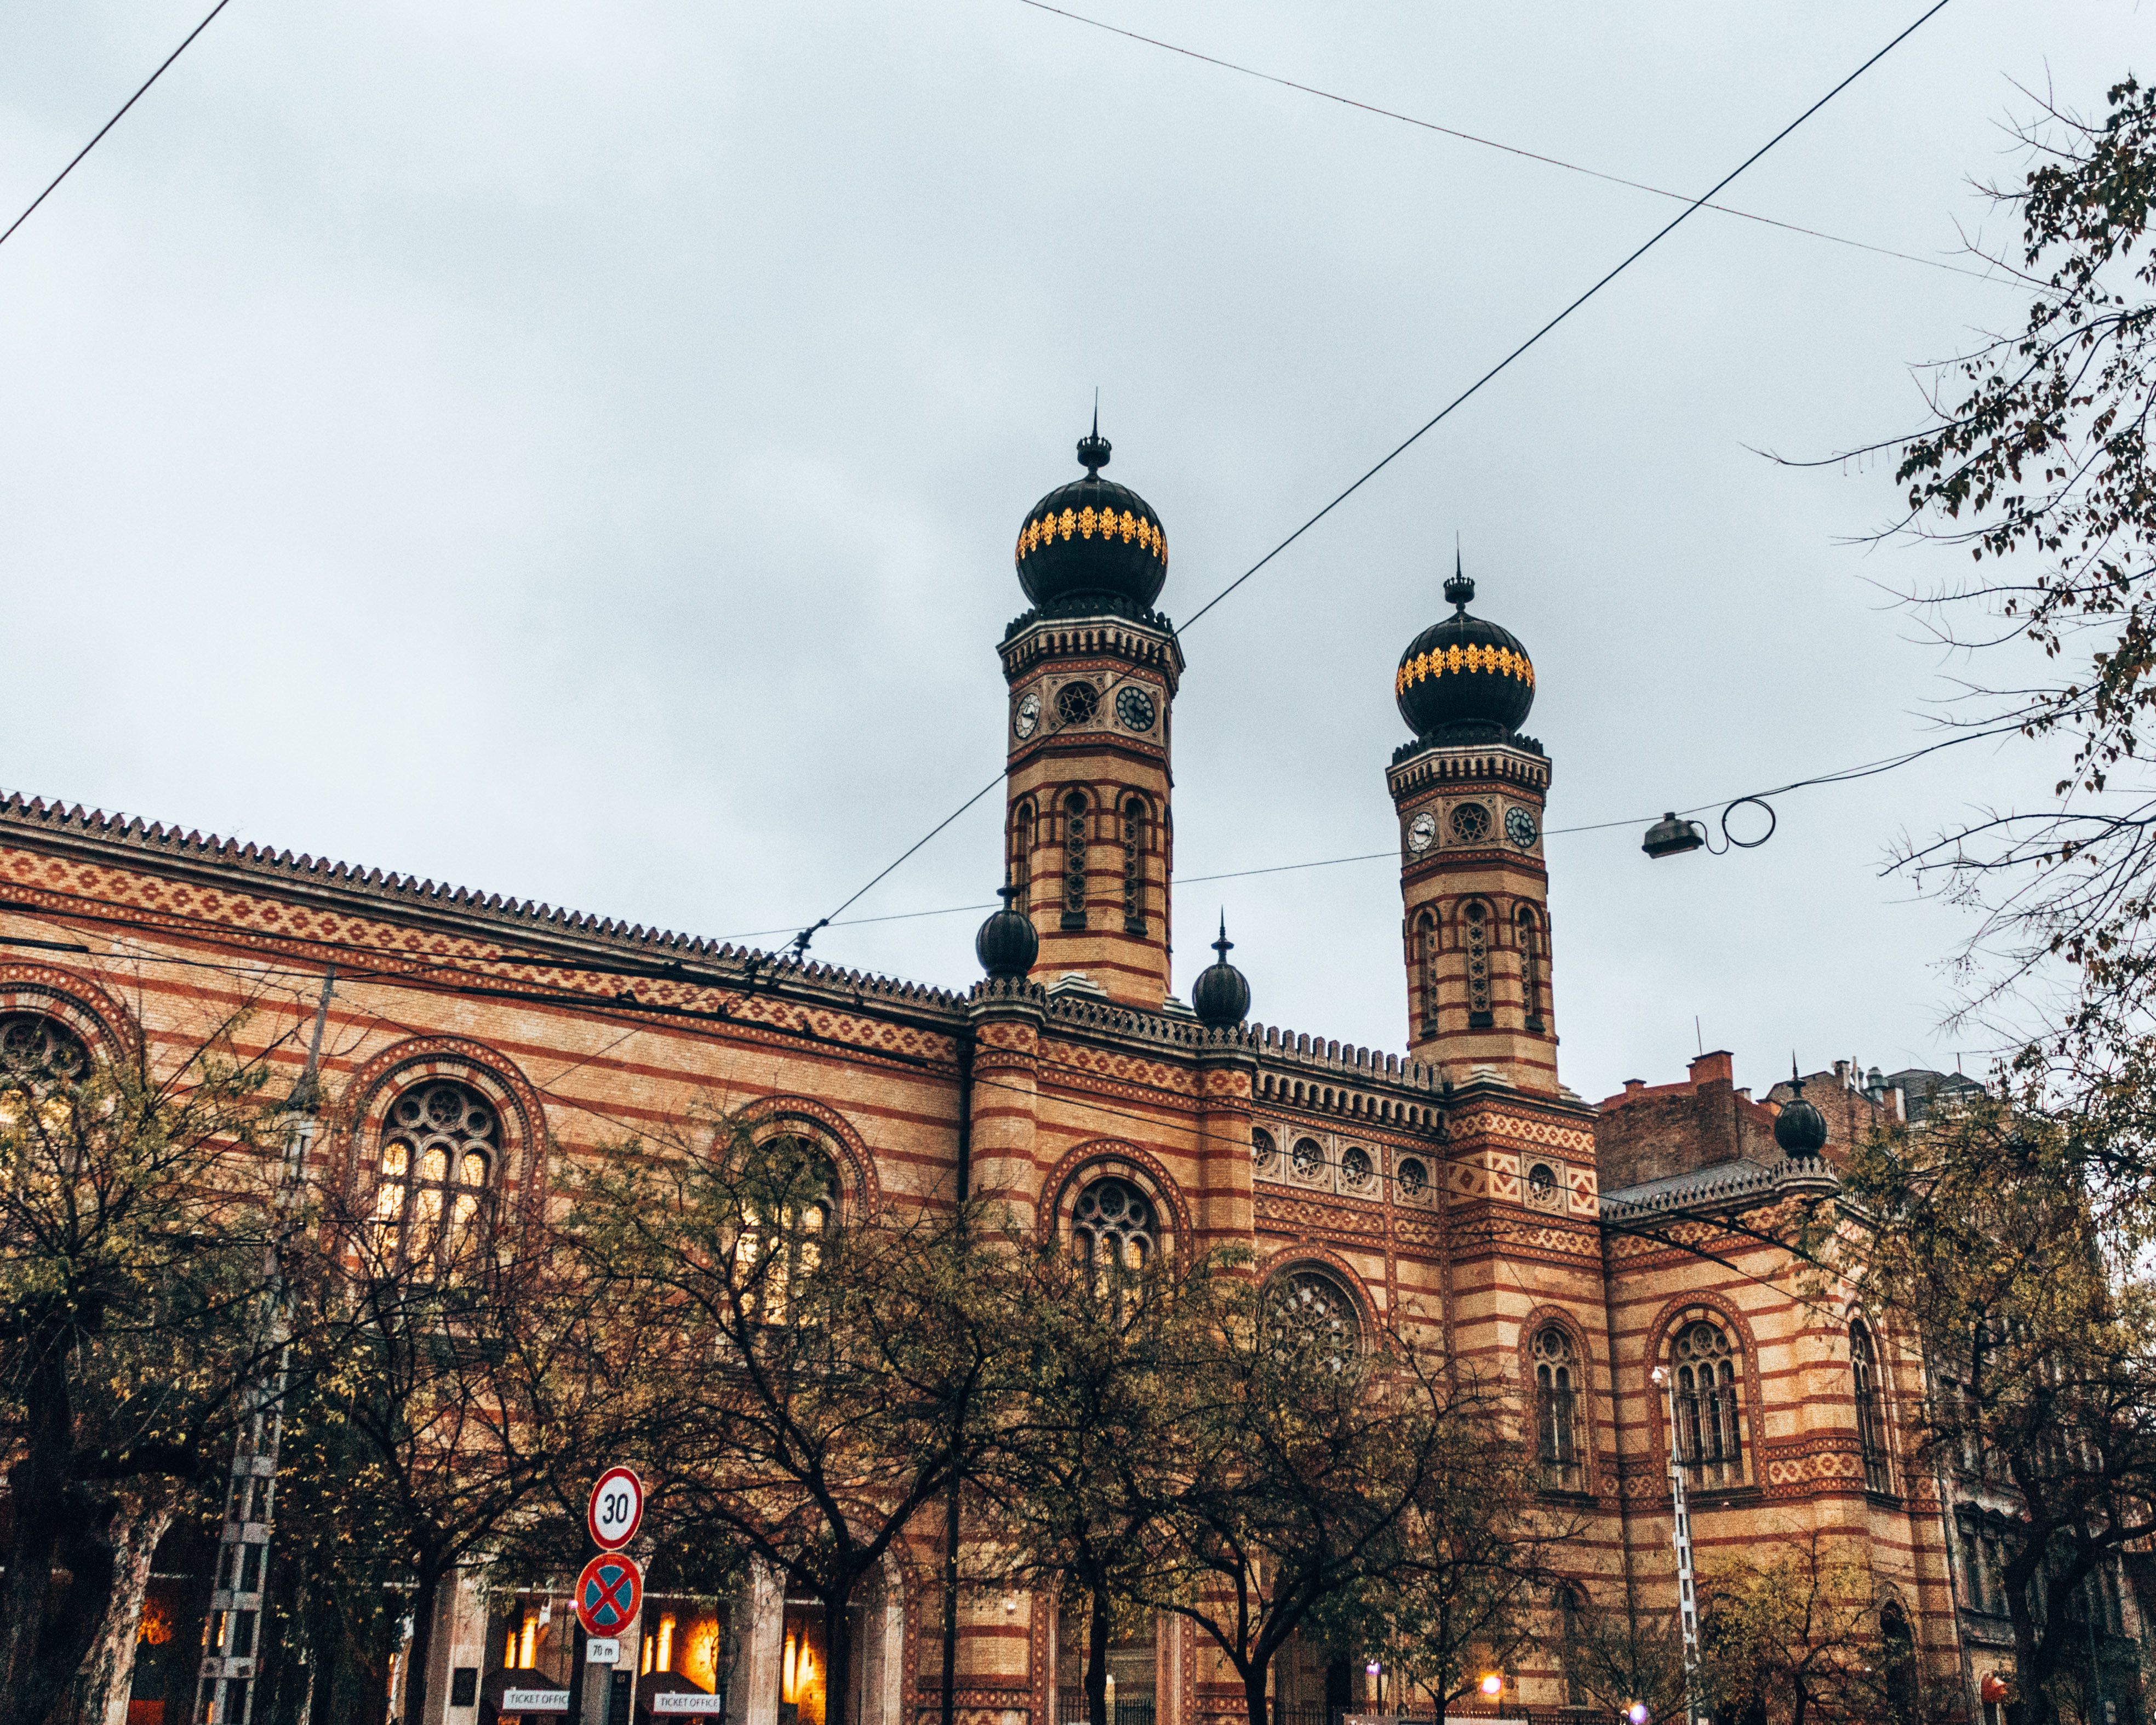 The Dohány Street Synagogue in Budapest, Hungary